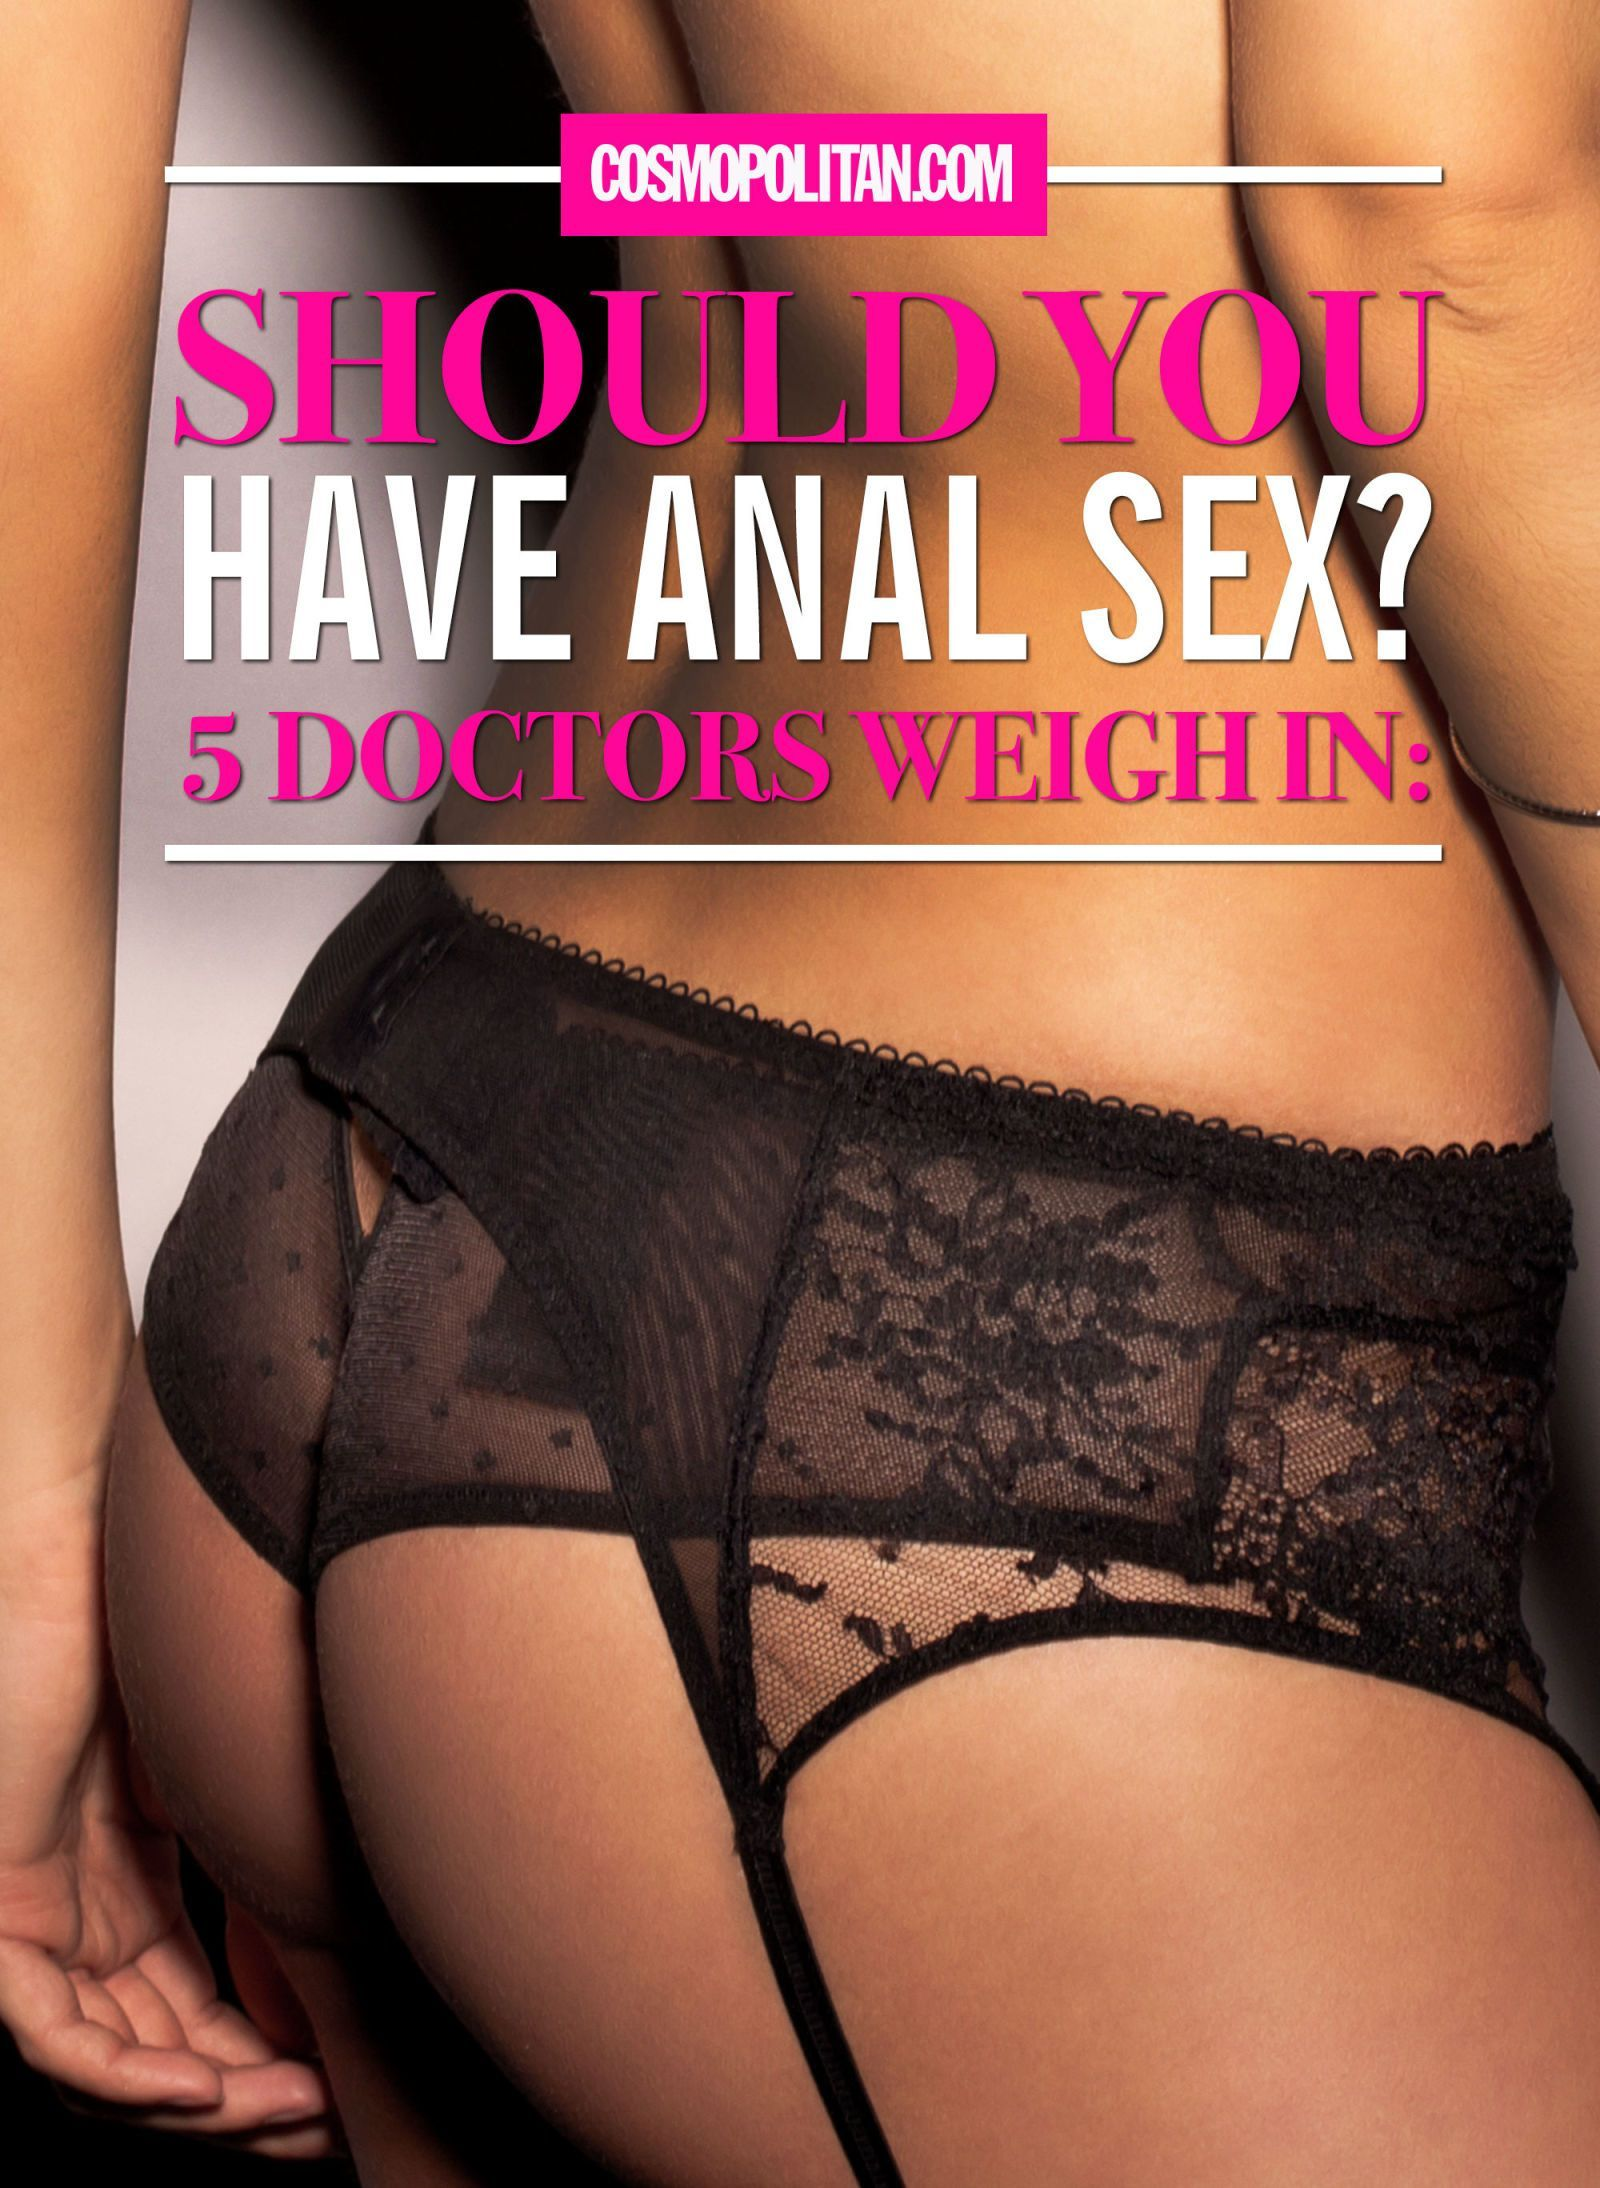 Magnet reccomend Medical advise to anal sex